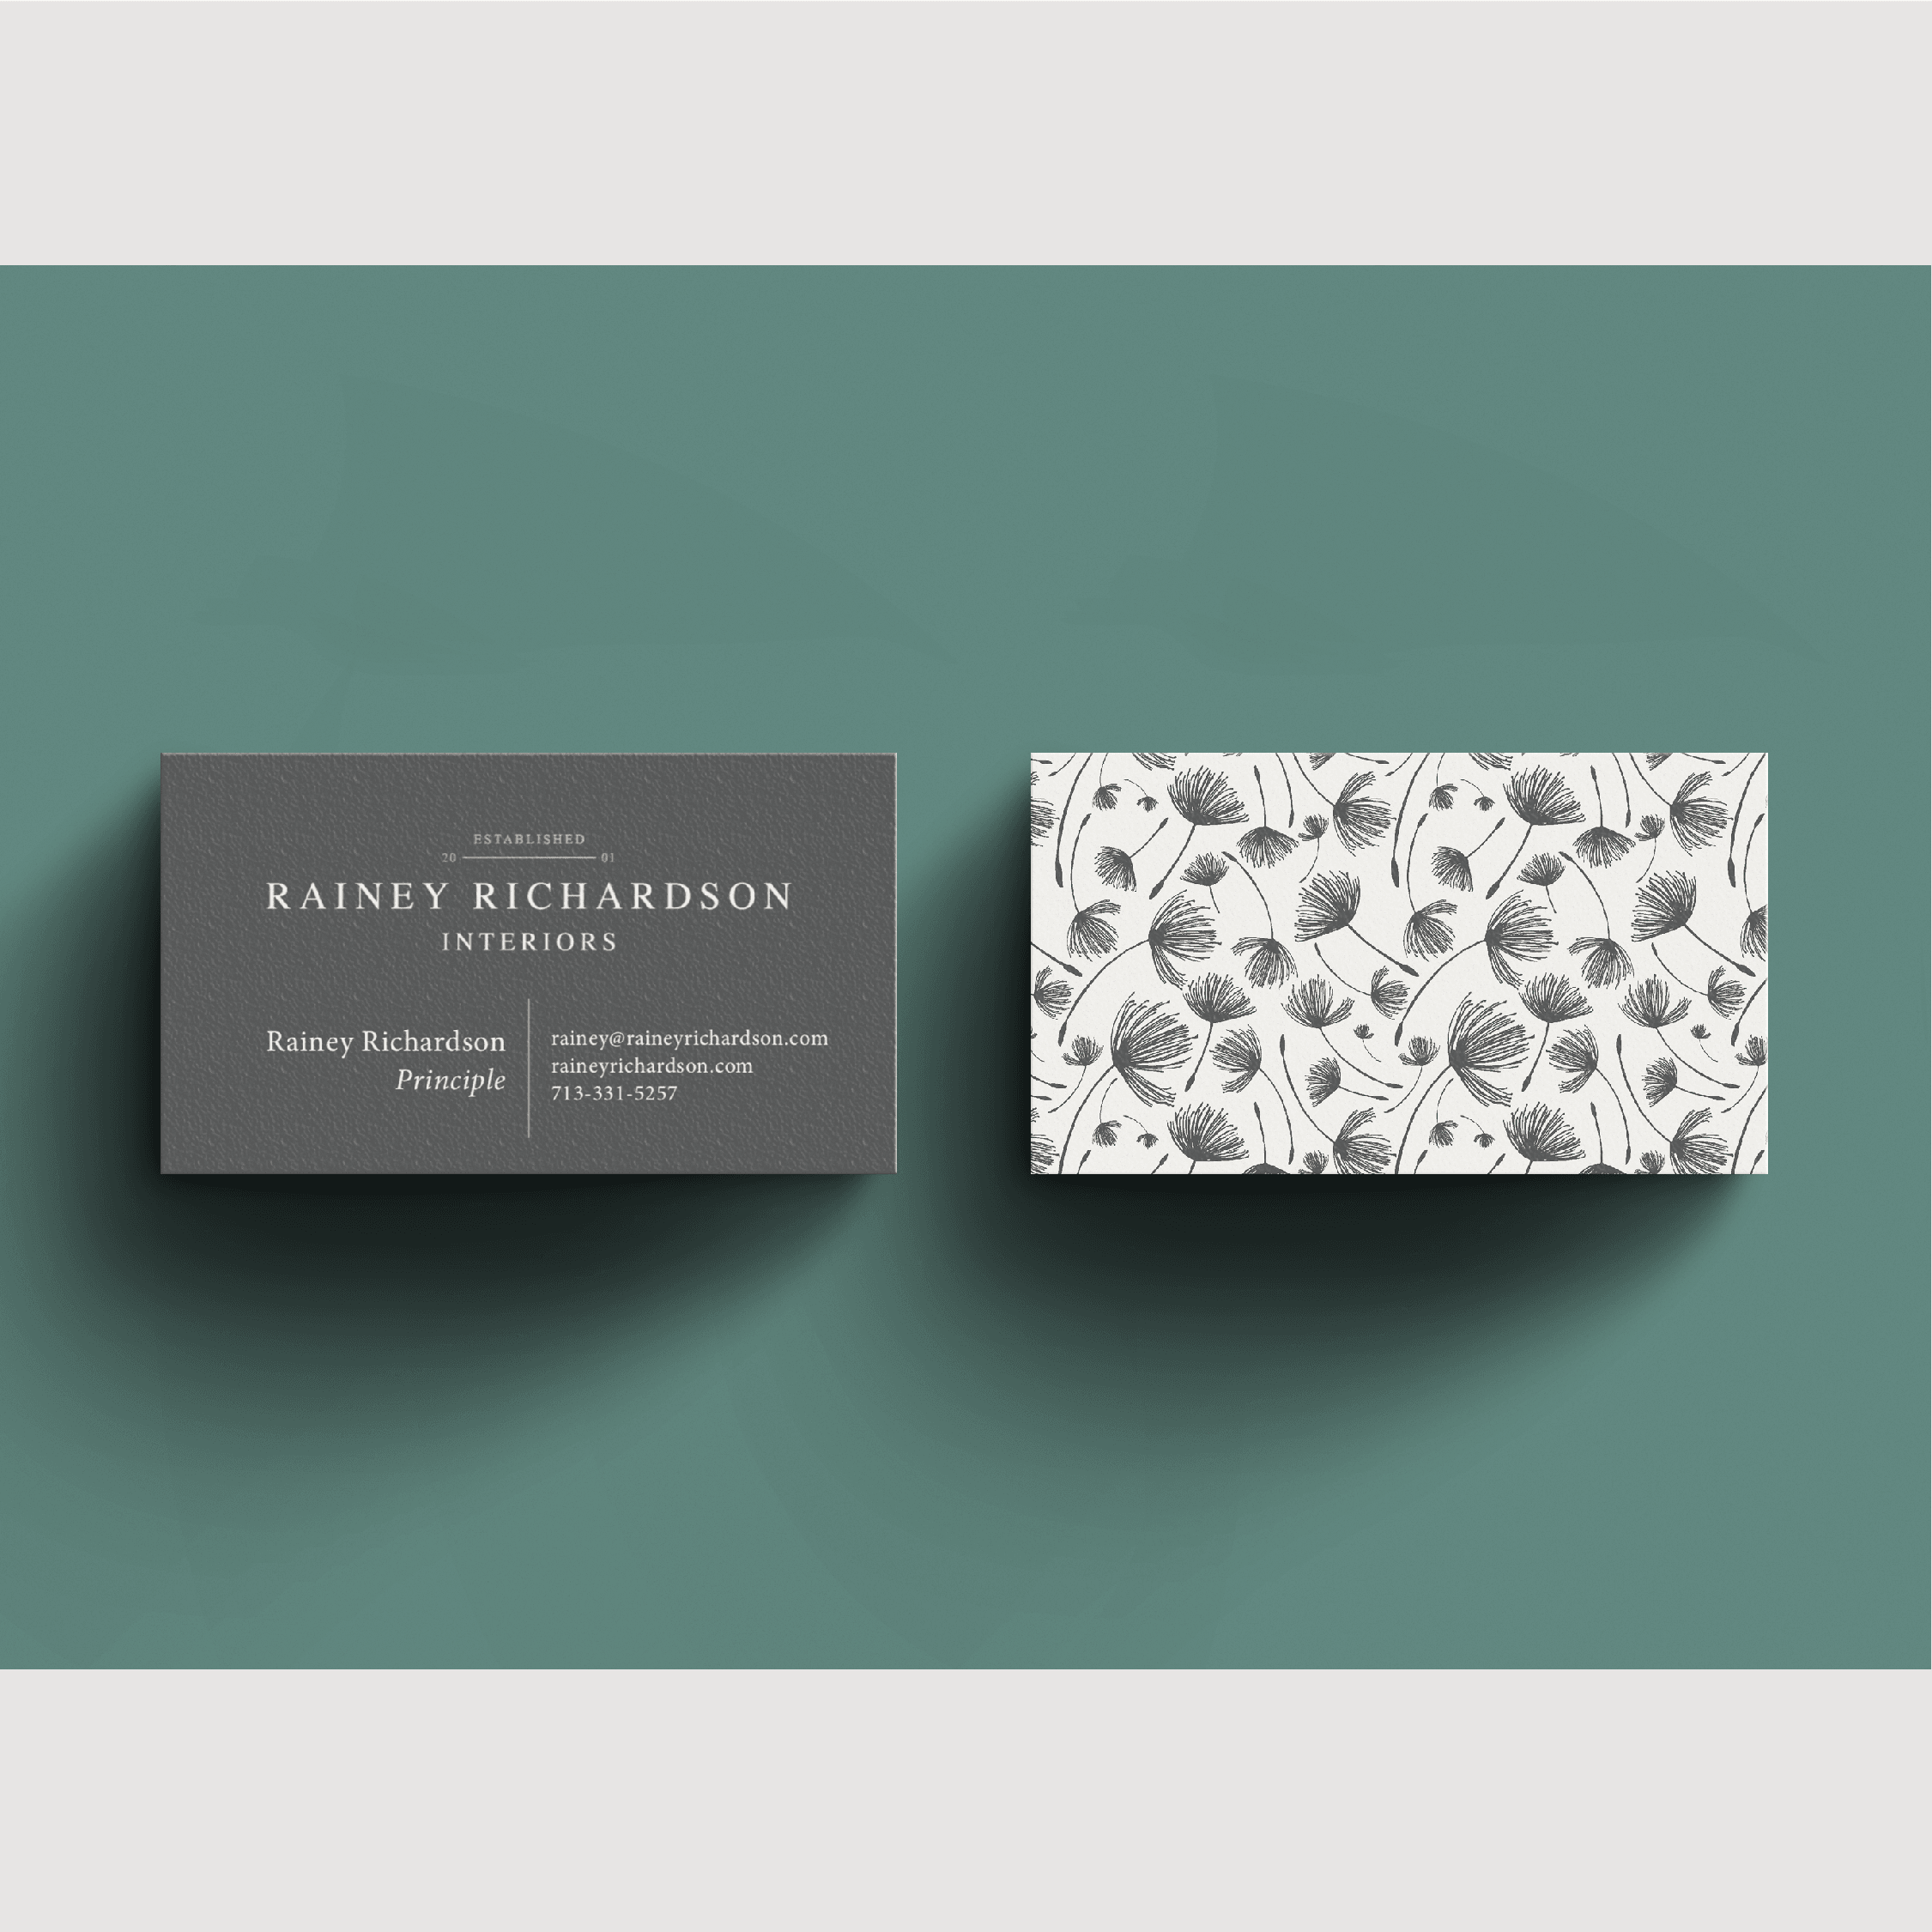 Rainey Richardson Interiors Houston Interior Designer | Logo and Business Card Design by Kindly by Kelsea